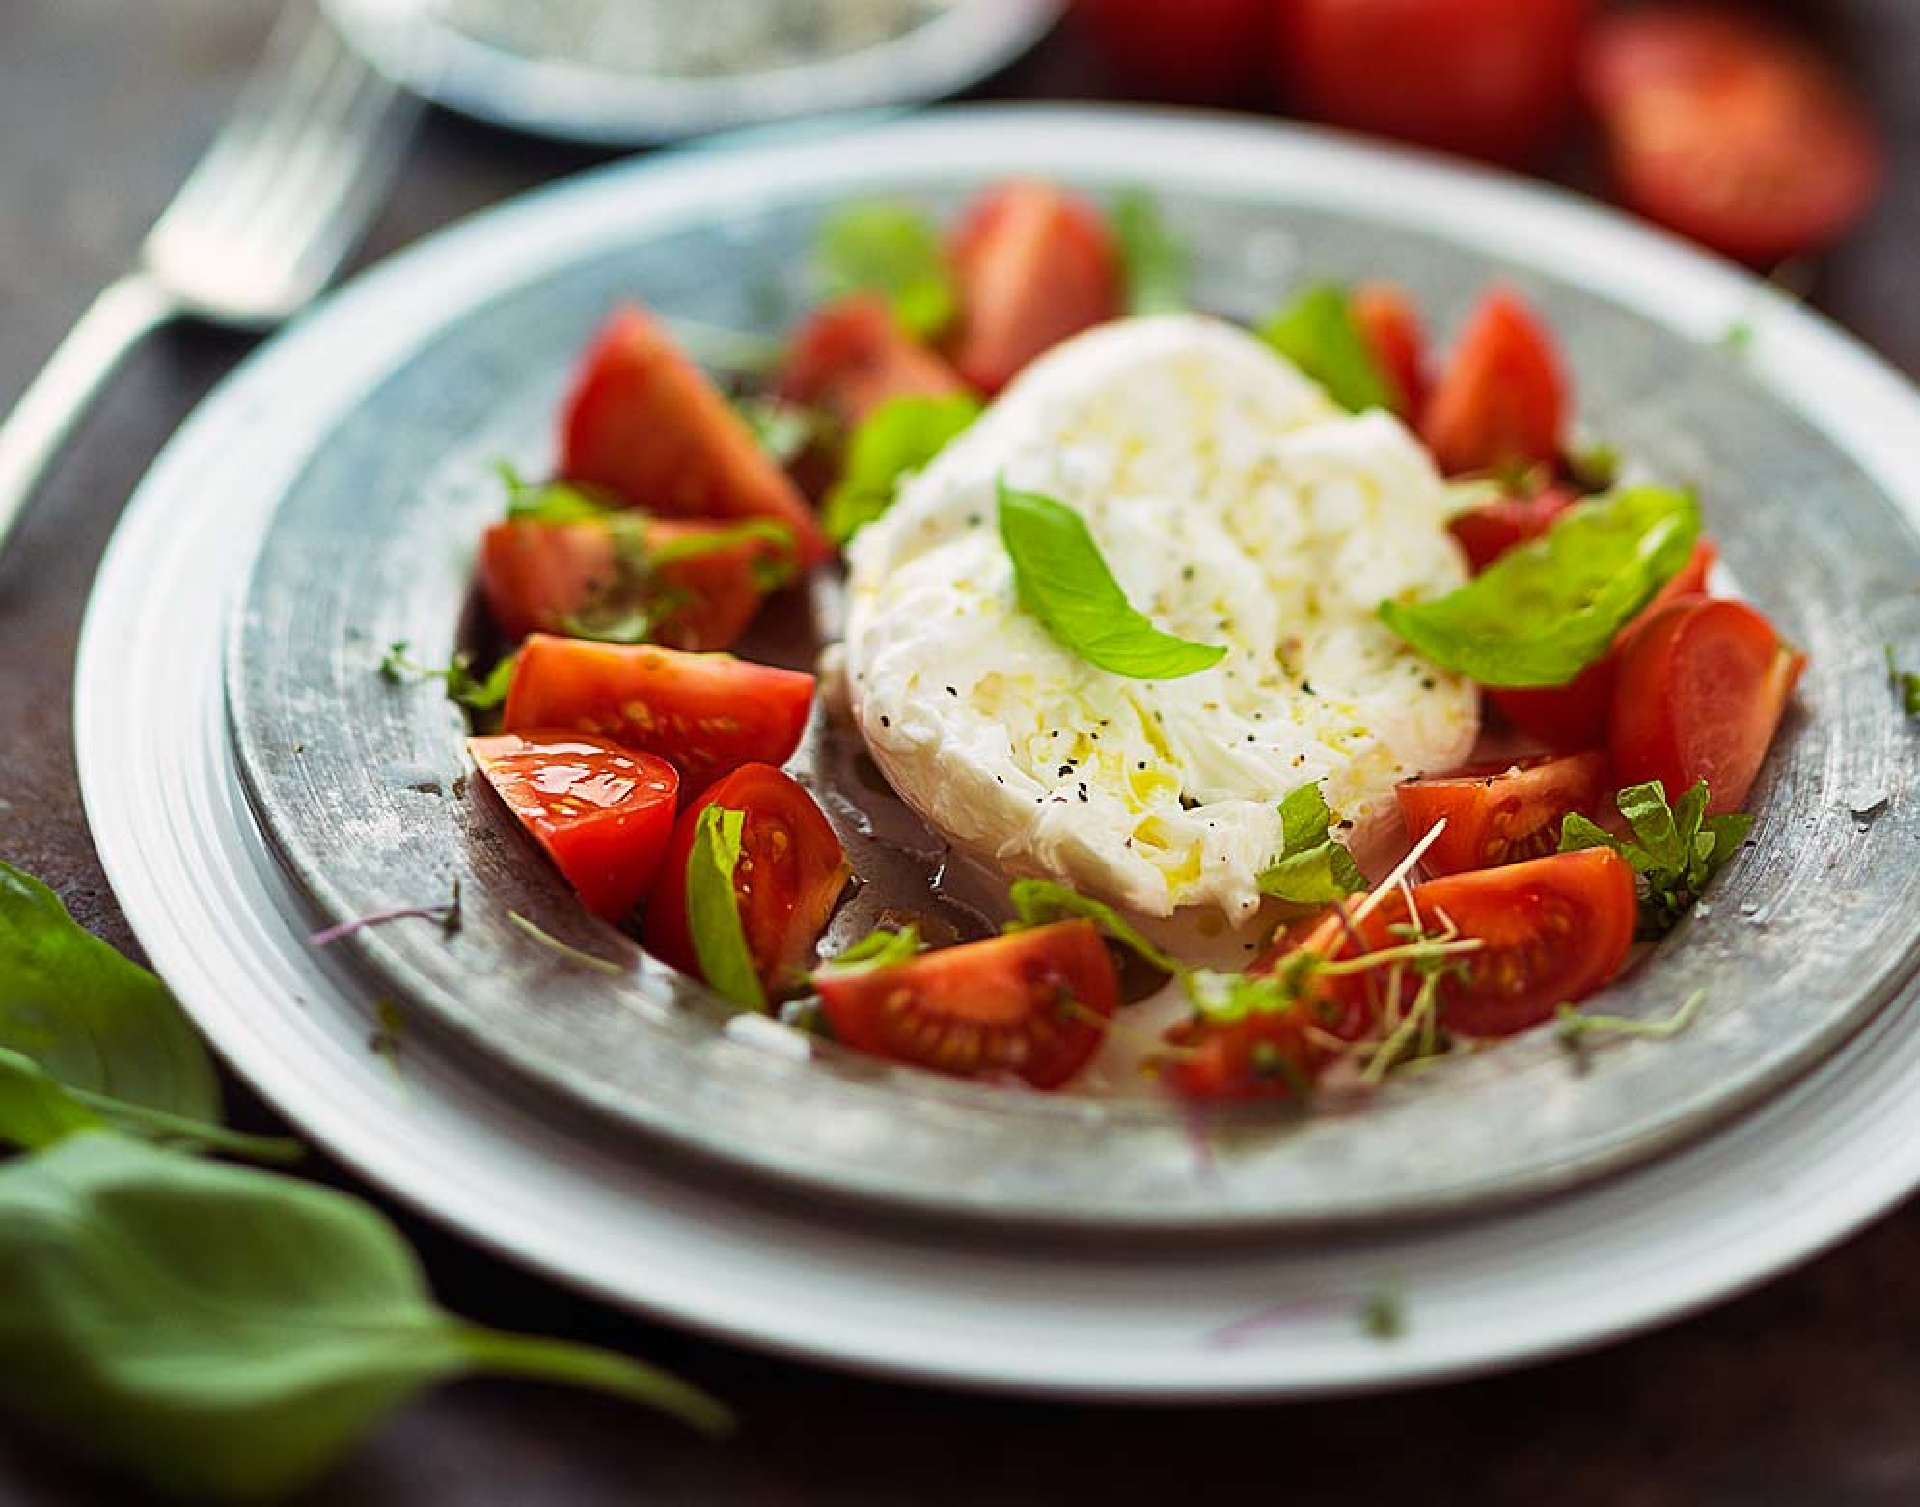 https://www.addressrealestate.com/media/images/blogs/80/2/b_heirloom-tomato-watermelon-and-burrata-salad-with-shiso.jpg